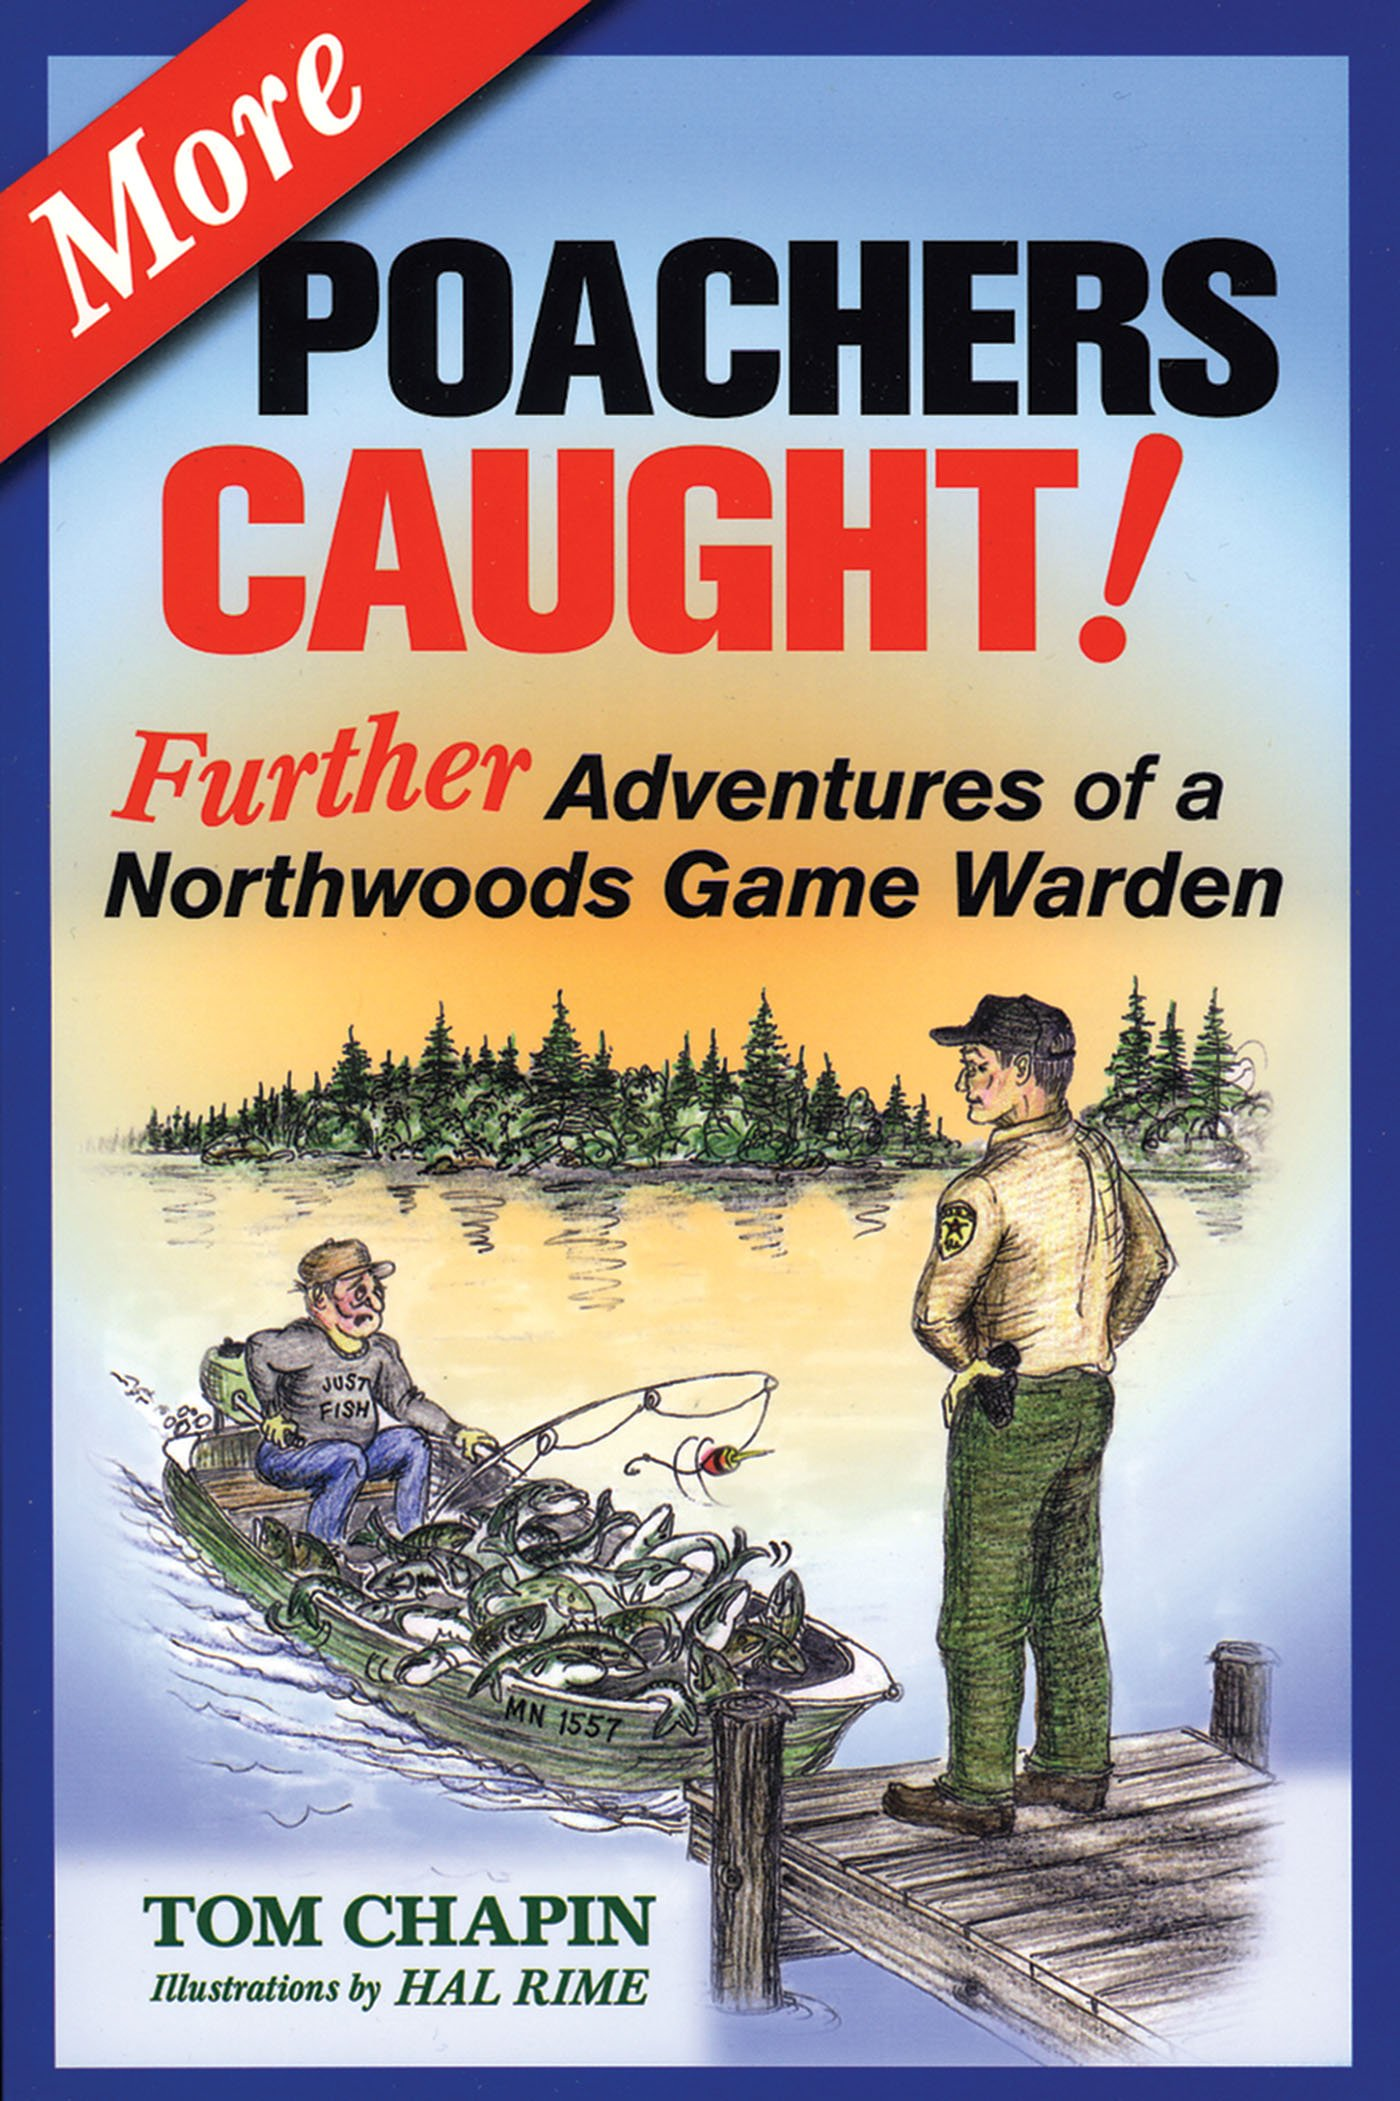 More Poachers Caught!: Further Adventures of a Northwoods Game Warden pdf epub